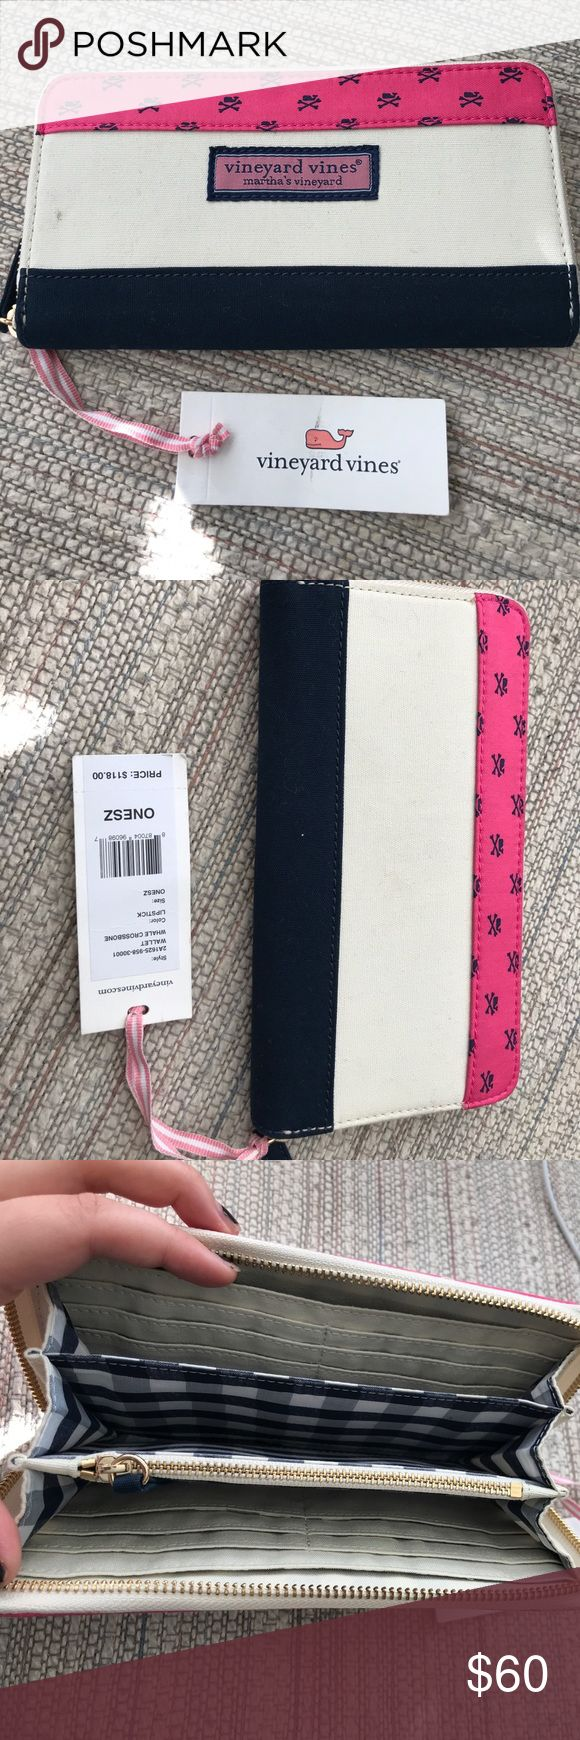 NWT Vineyard Vines Wallet New with tags Vineyard Vines accordion wallet. Includes 16 credit card slots, 2 money slots, and 1 zipper pouch. Great gift, at a great price; retails for $118. Vineyard Vines Bags Wallets